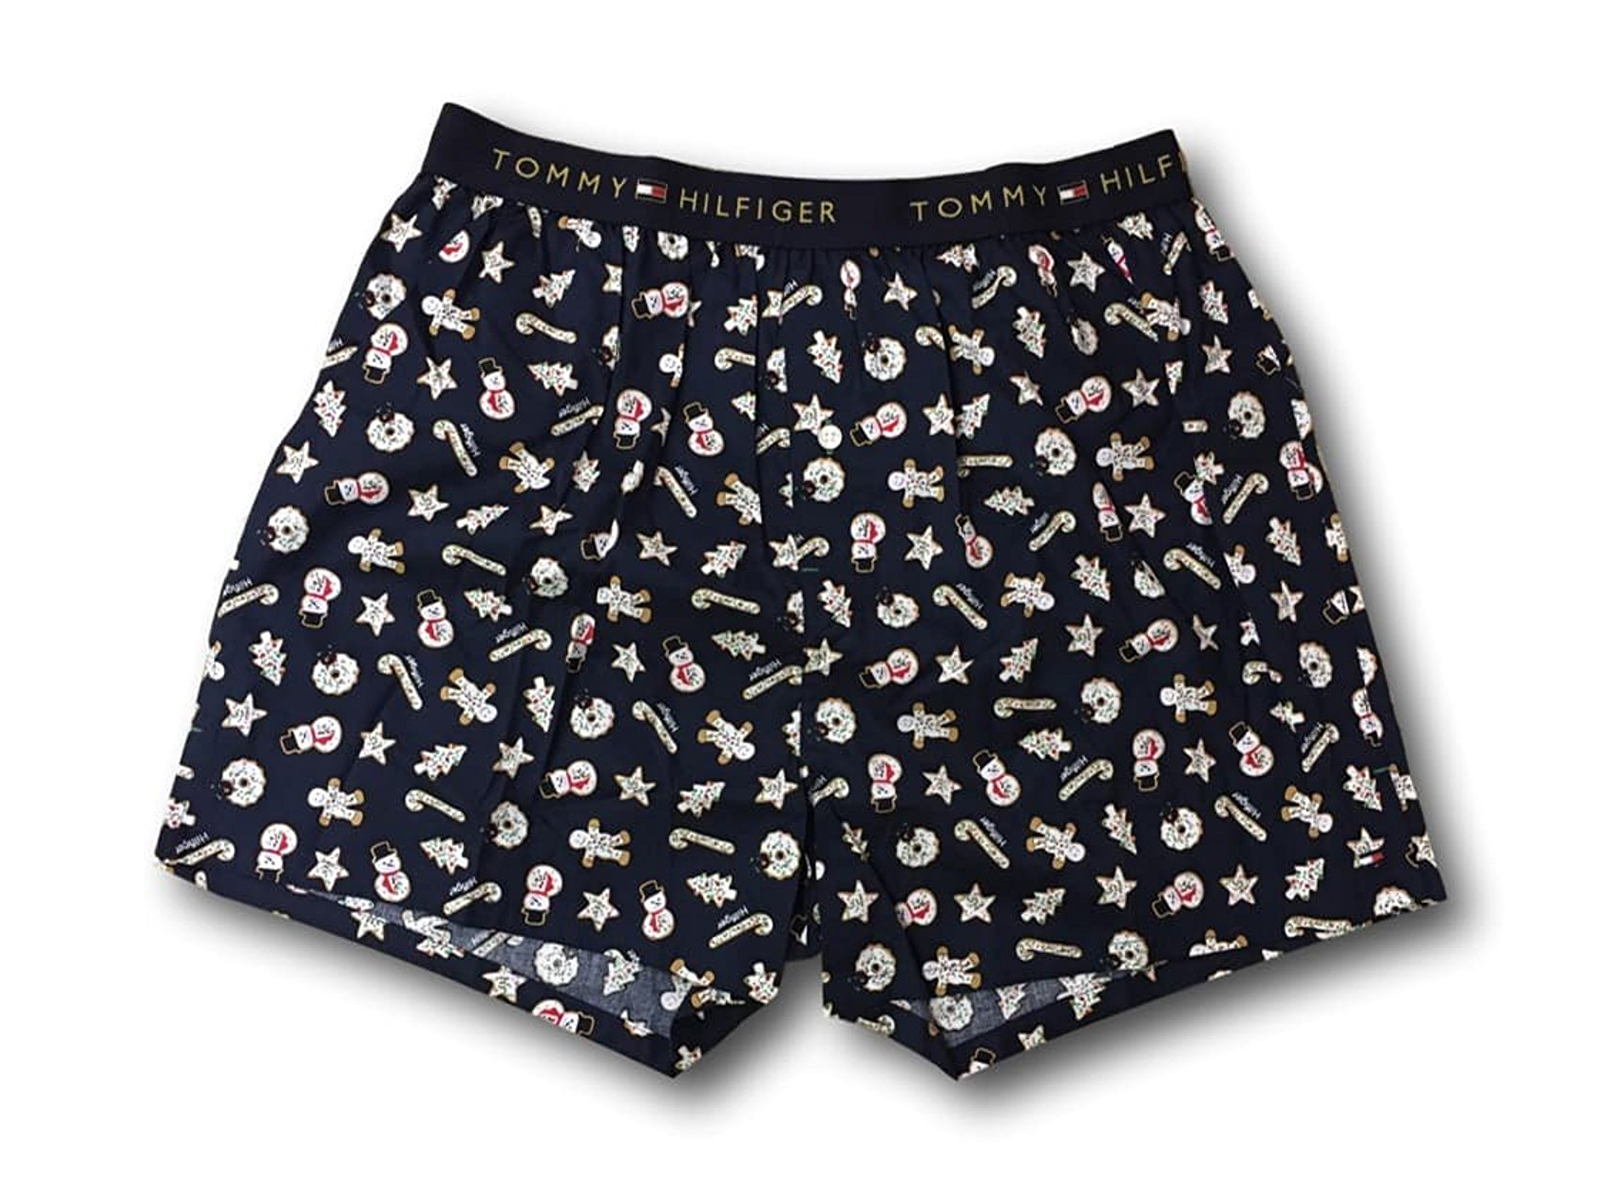 Gingerbread Man Boxer Shorts